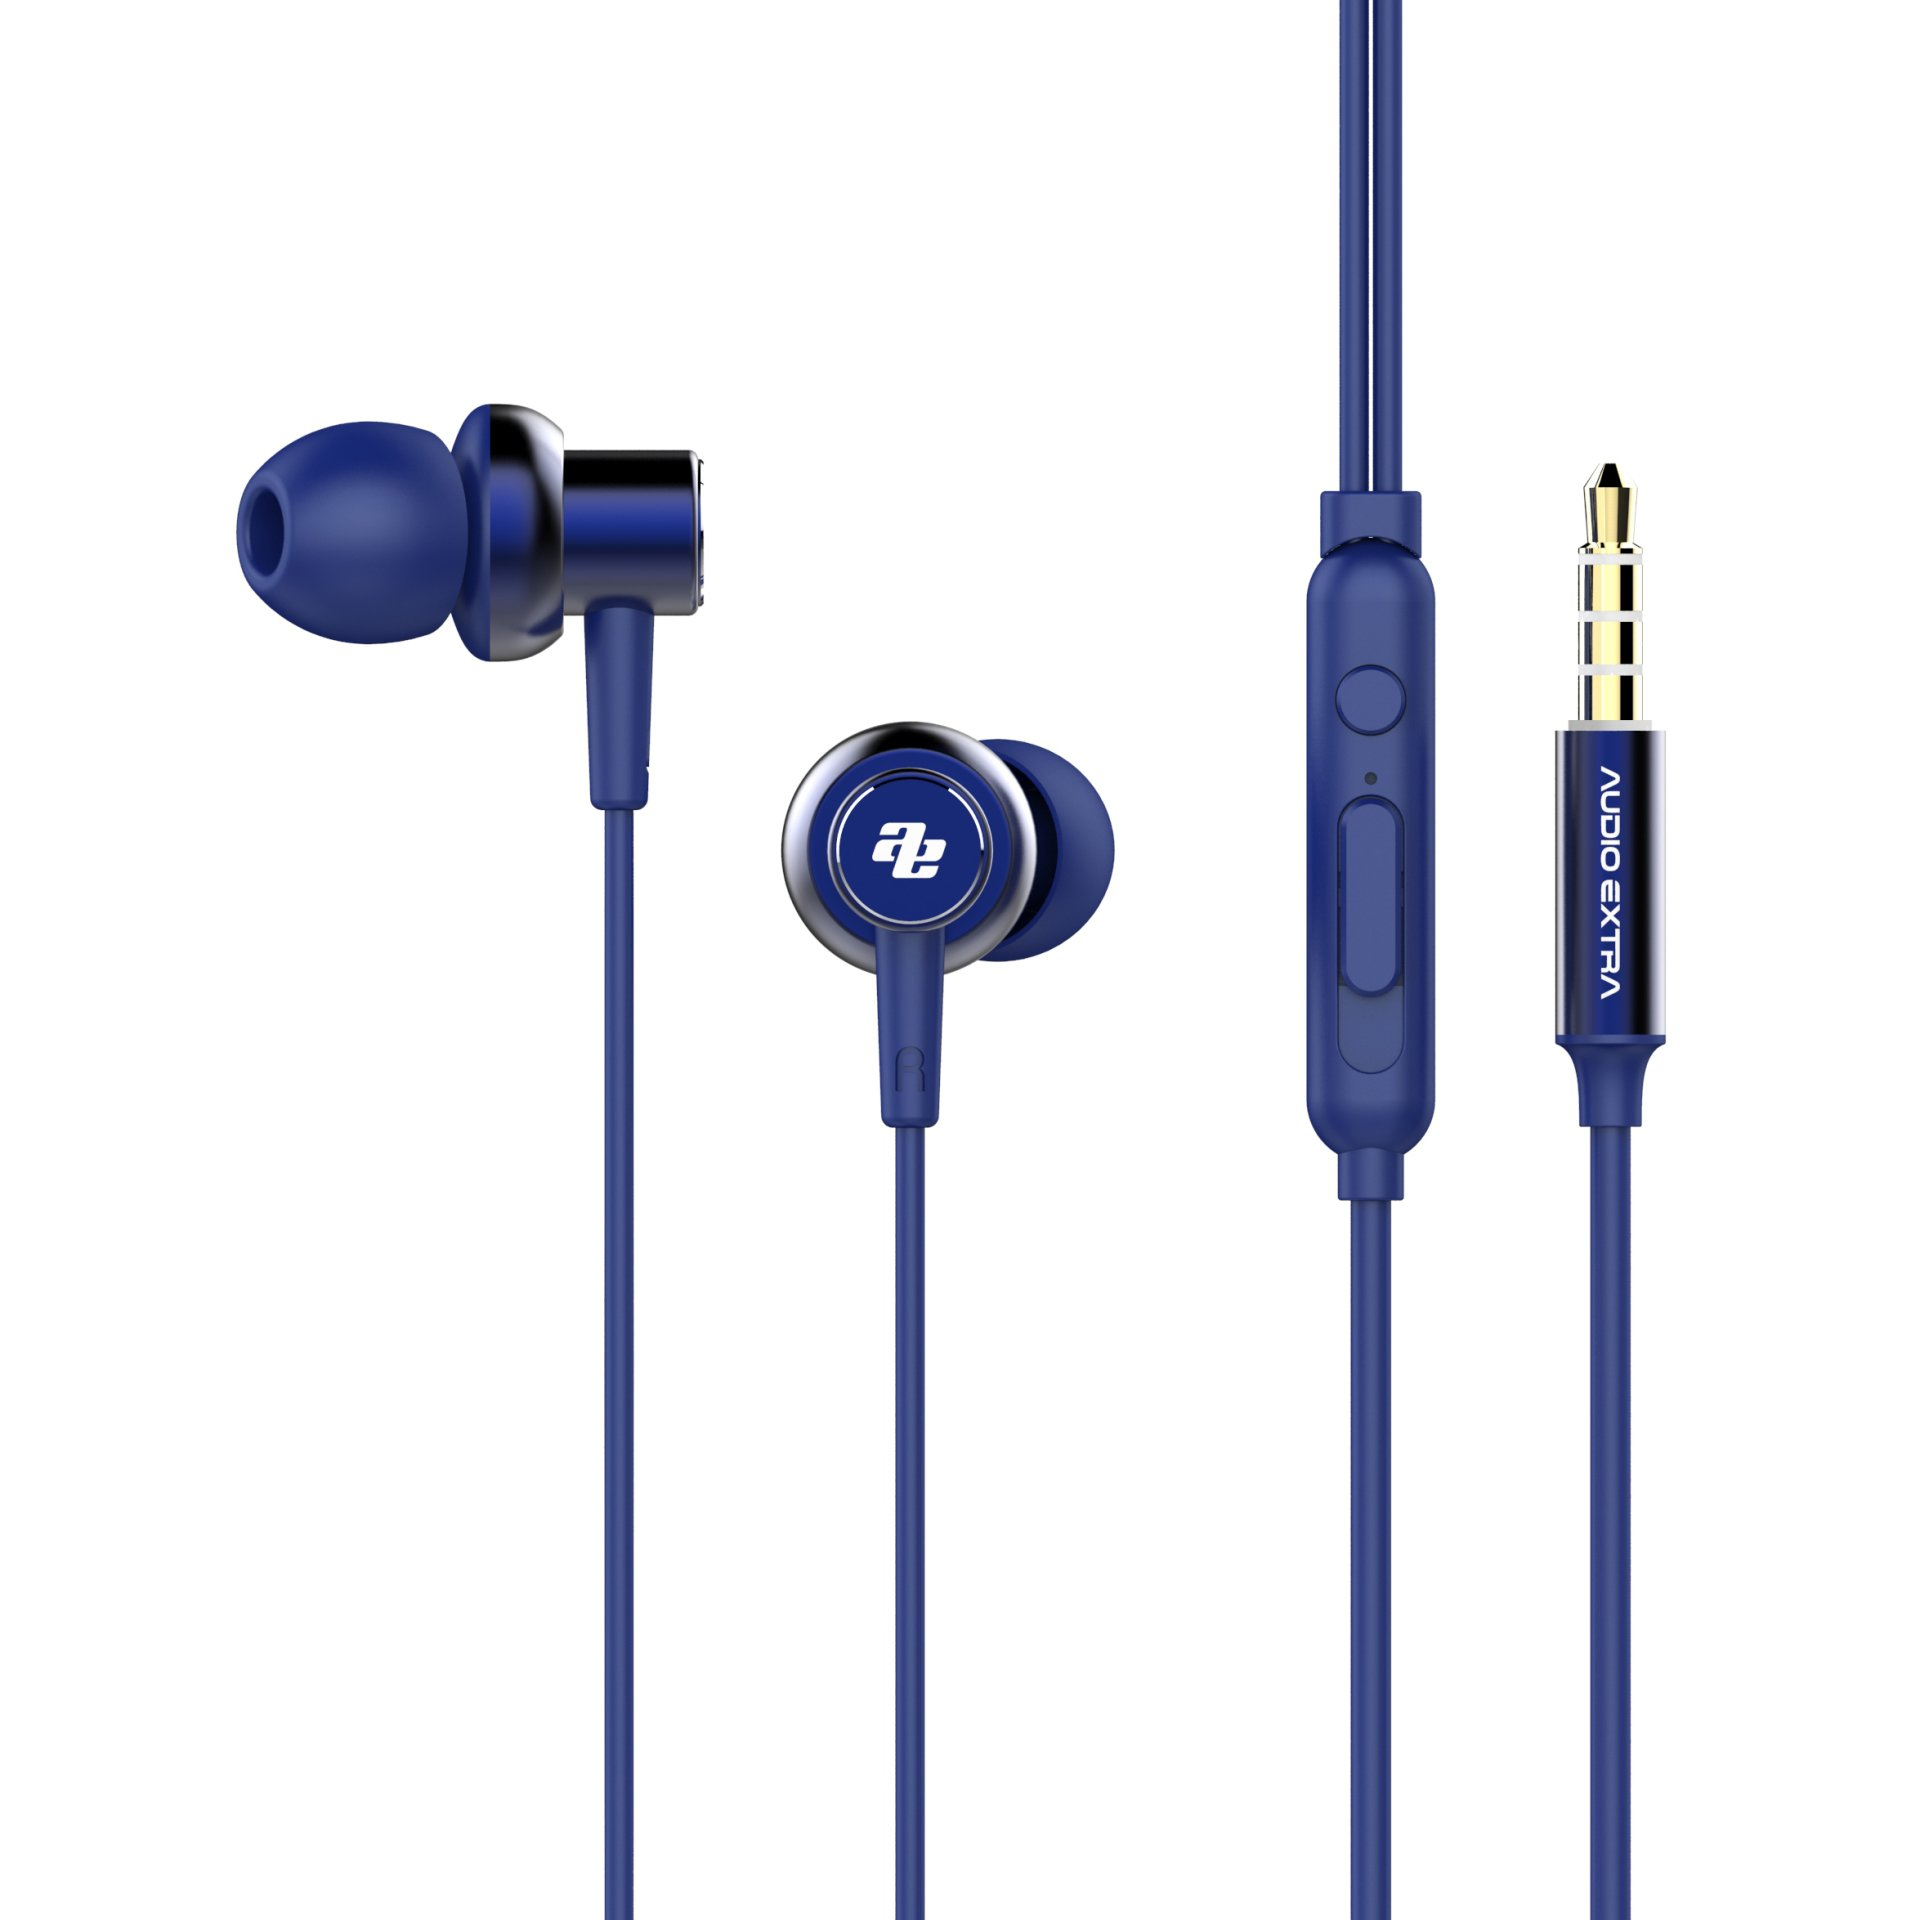 AUDIO EXTRA Angled In-Ear Earphones with MIC & Volume Control 4 ft Cord 3.5mm Audio Jack Clear Powerful Sound AE-A7 (Blue)